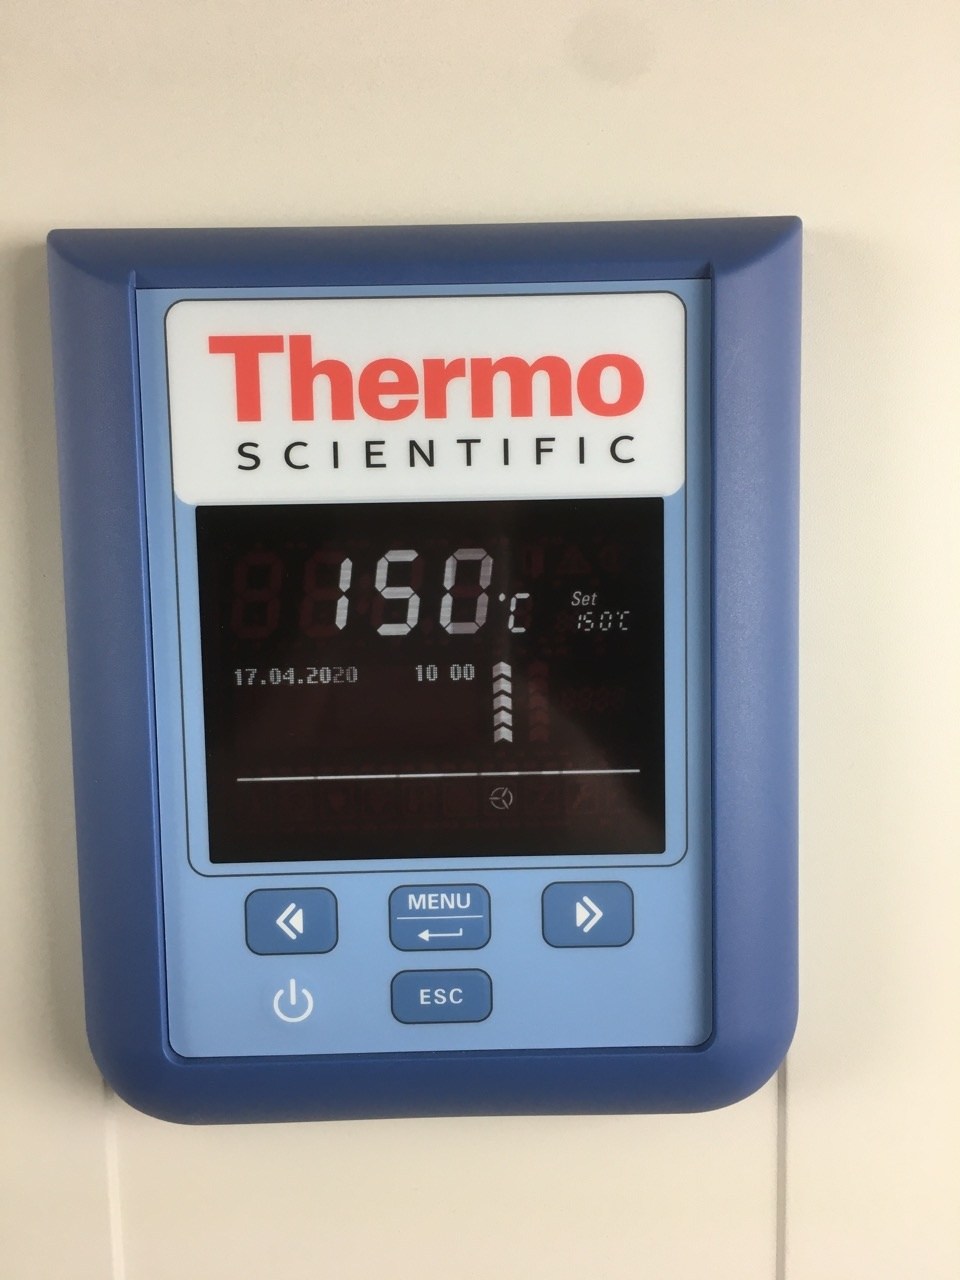 Thermo Scientific Thermo Heratherm OMH750 - 3P Advanced Protocol Circulating Air Drying Oven